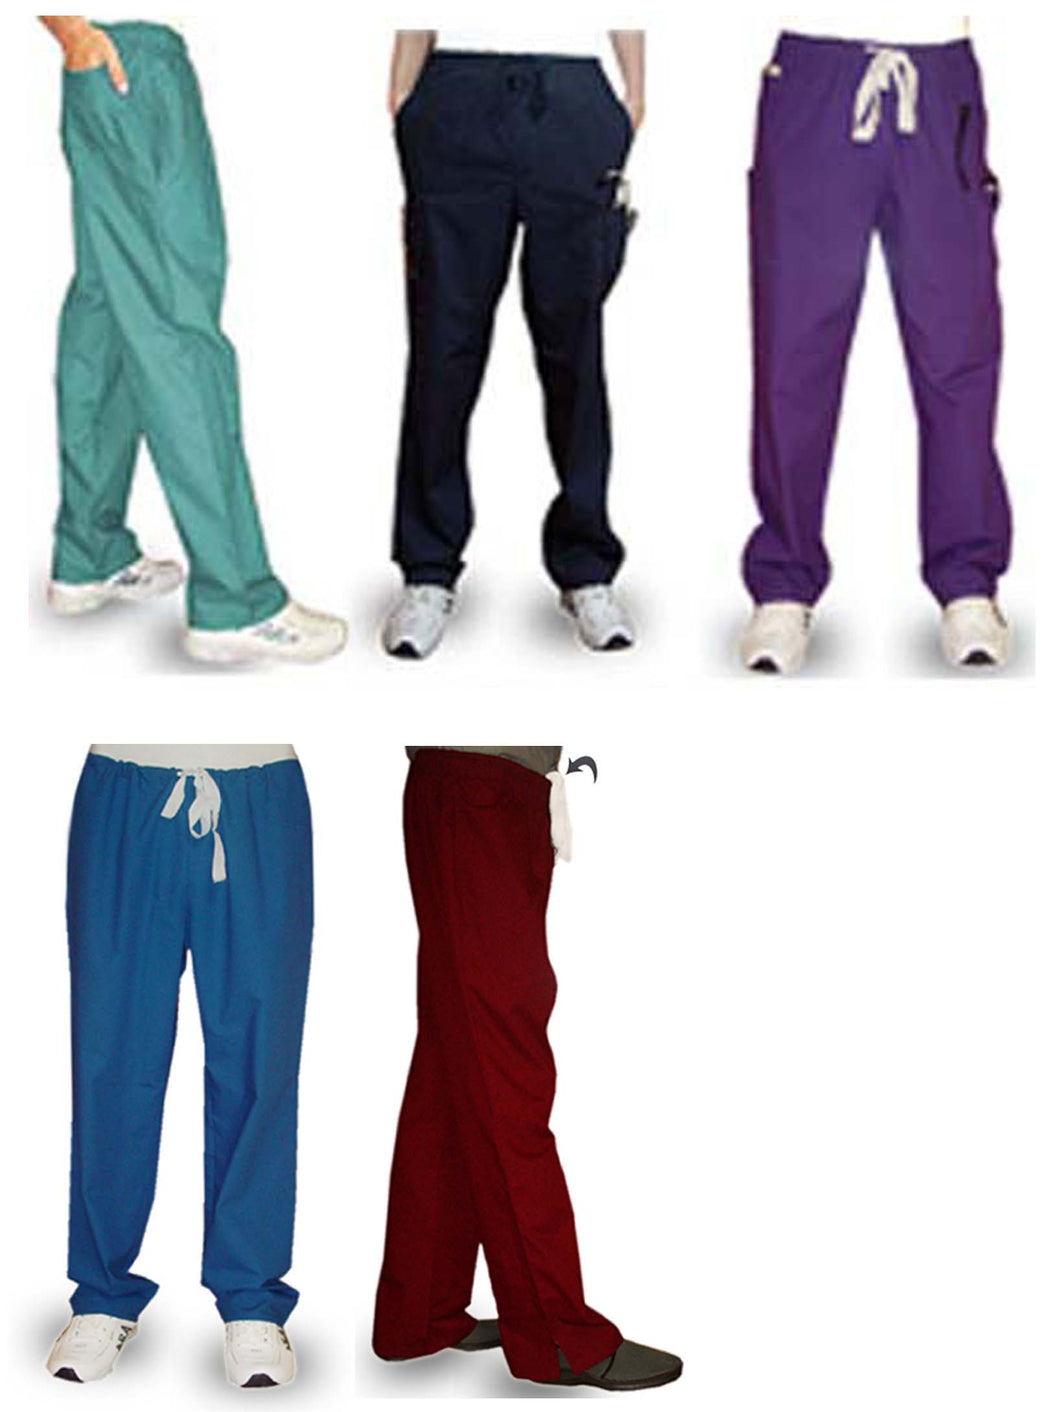 A+ Microfiber fabric qld pants select your style - A Plus Medical Scrubs